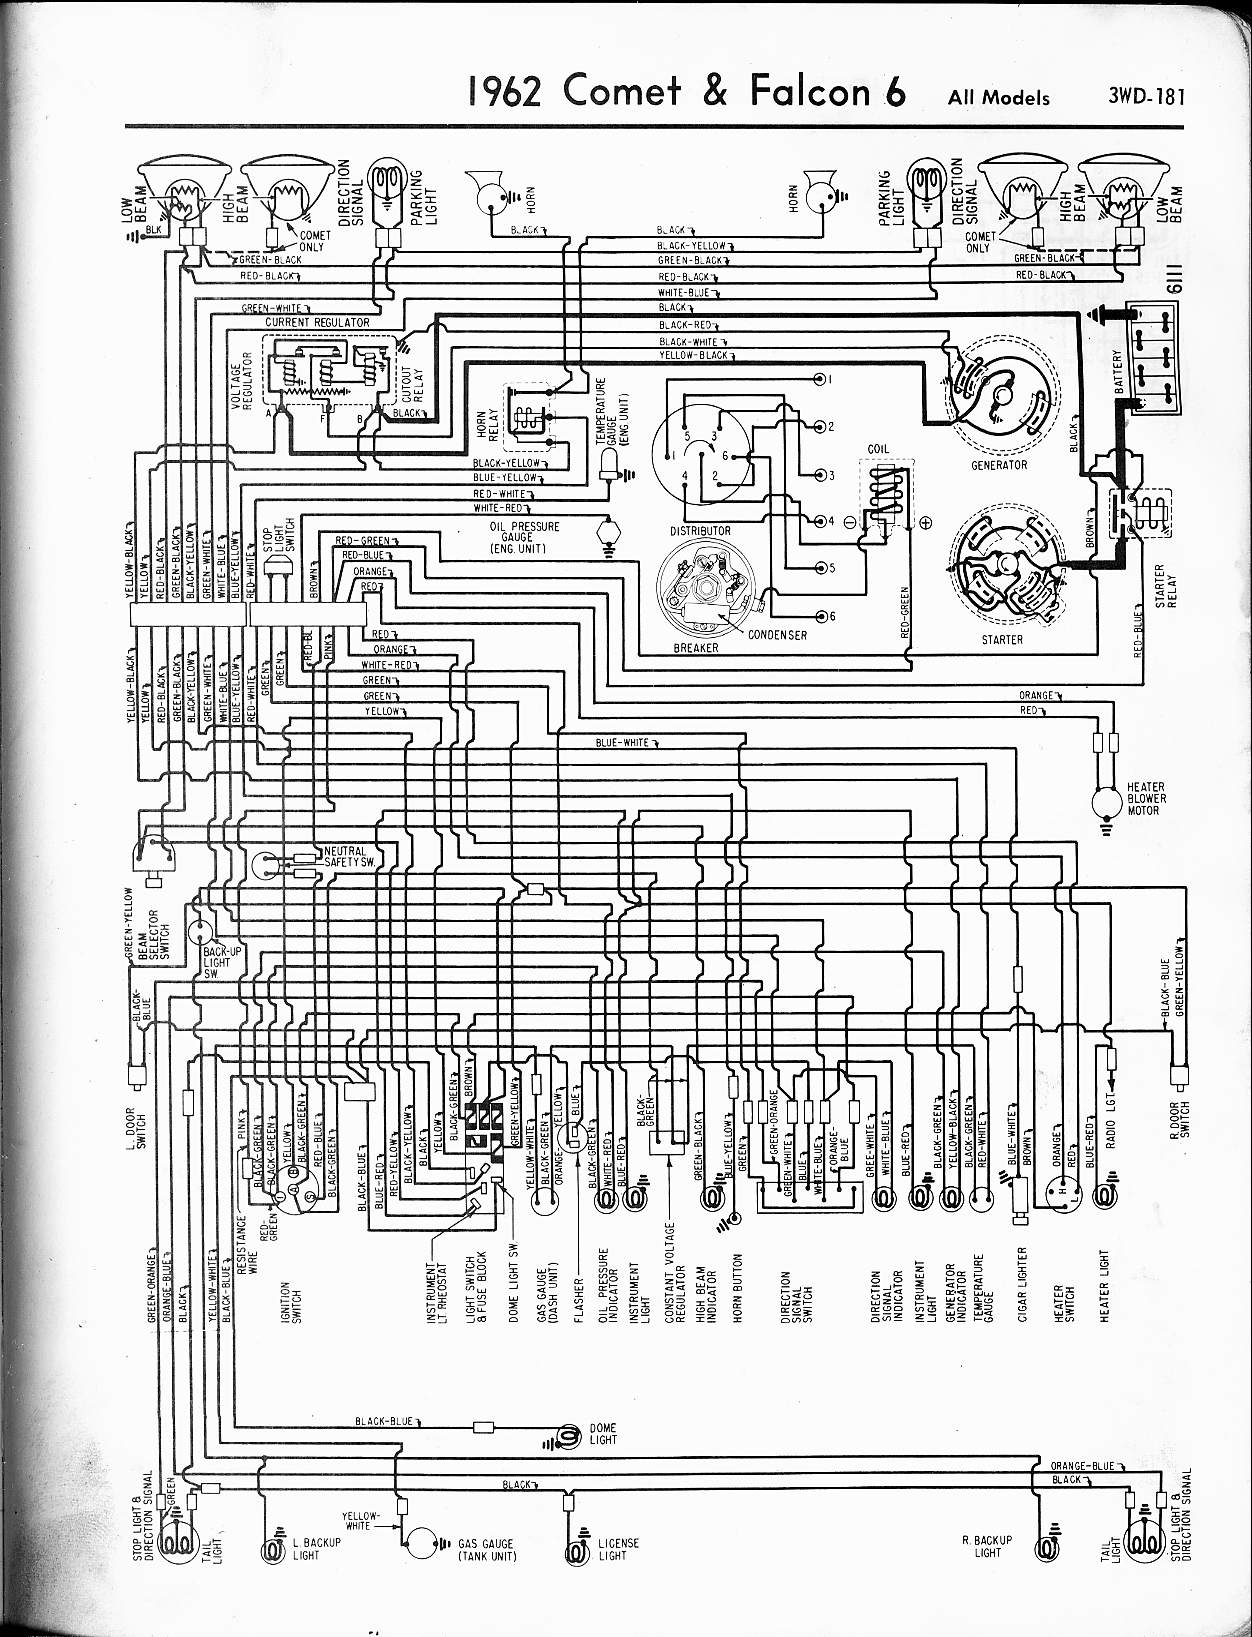 Stereo Wiring Diagram For El Falcon Opinions About 68 Gmc Harness 57 65 Ford Diagrams Rh Oldcarmanualproject Com